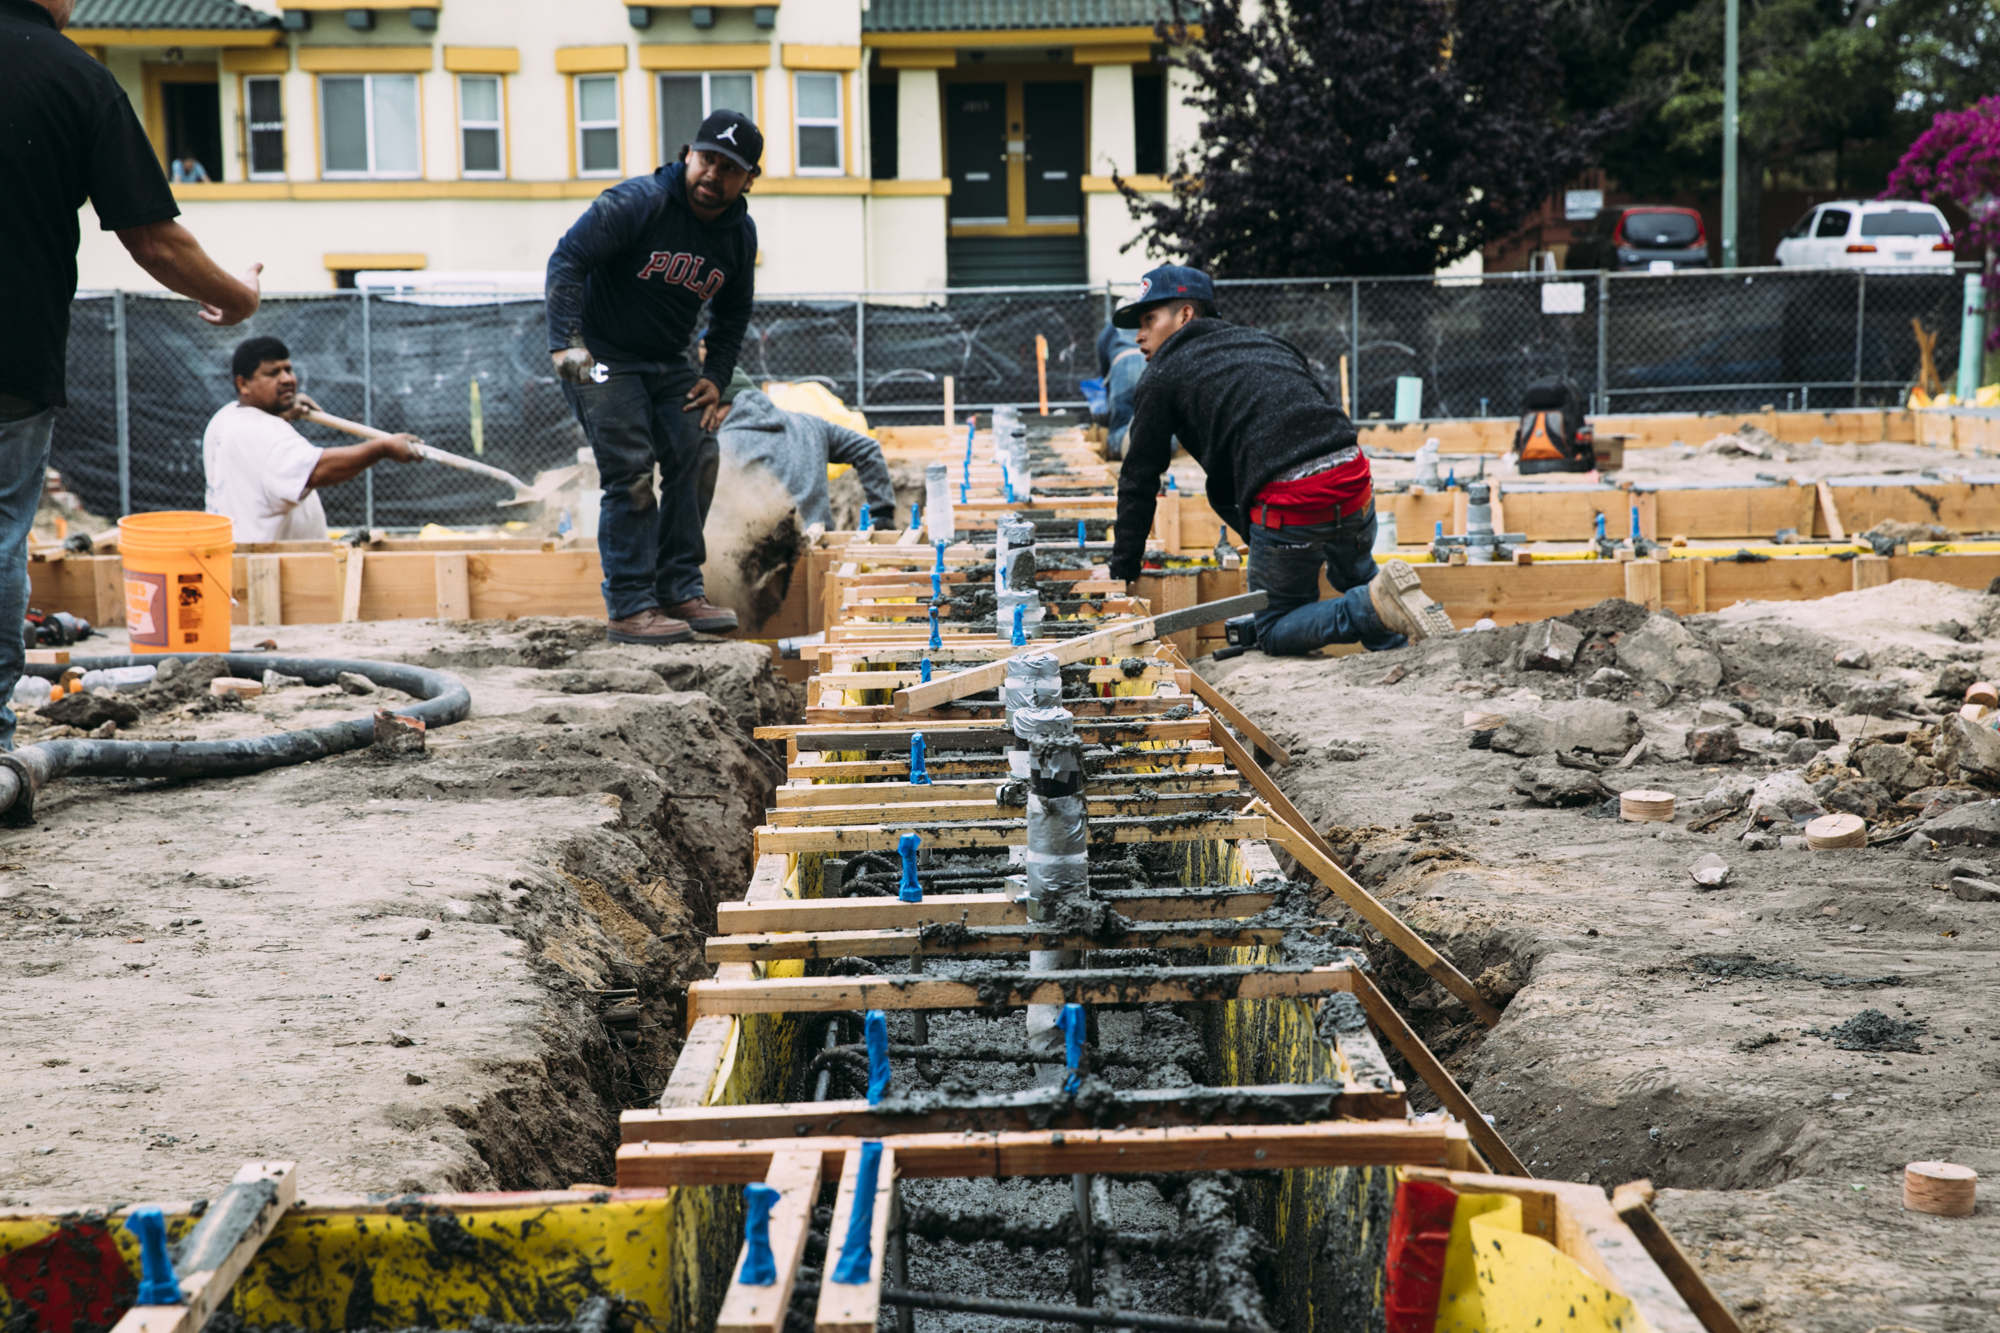 061019-00312_18thLinden_Construction.jpg